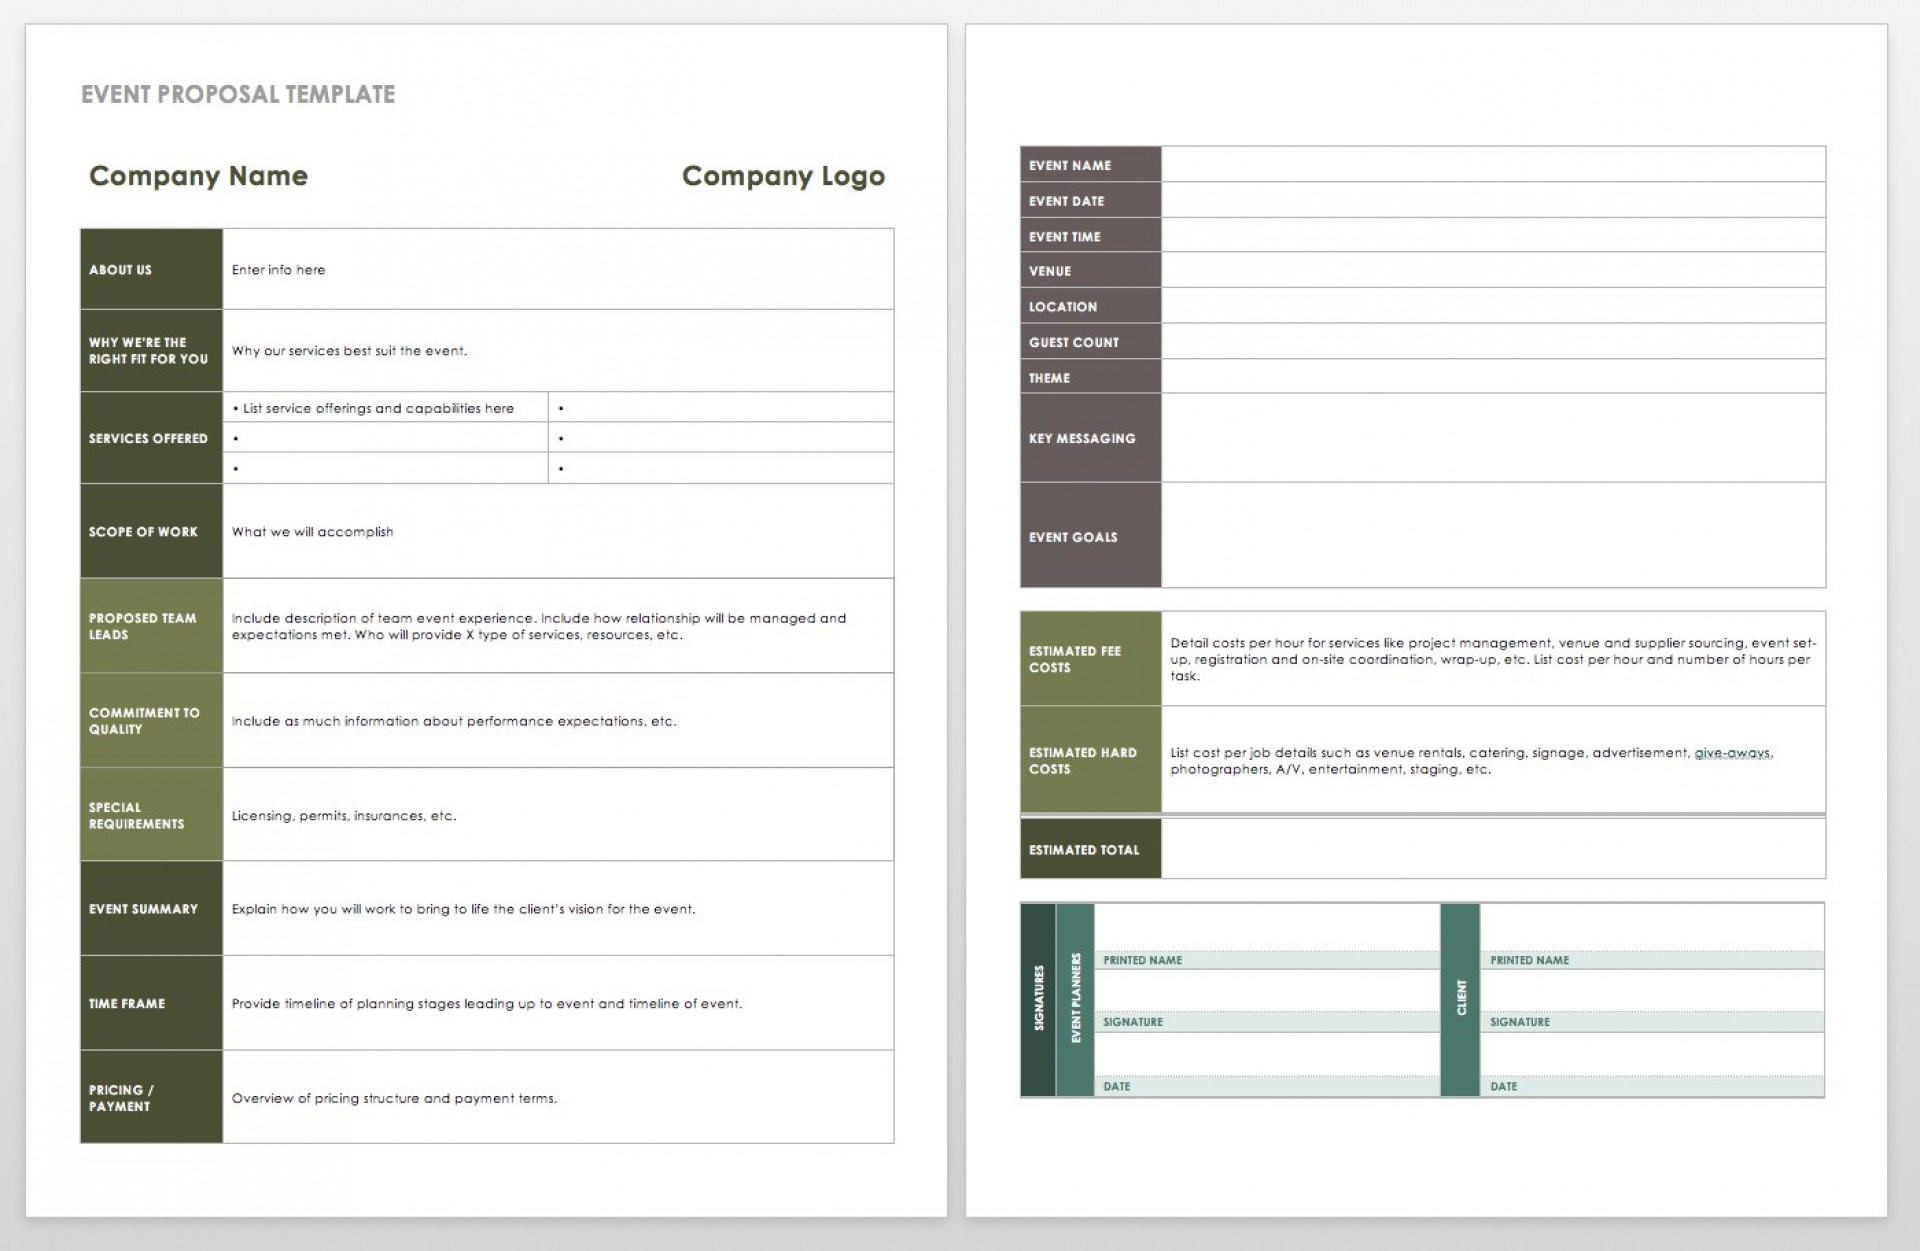 001 Plan Template Ic Event Schedule Microsoft ~ Tinypetition pertaining to Event Schedule Planner Template